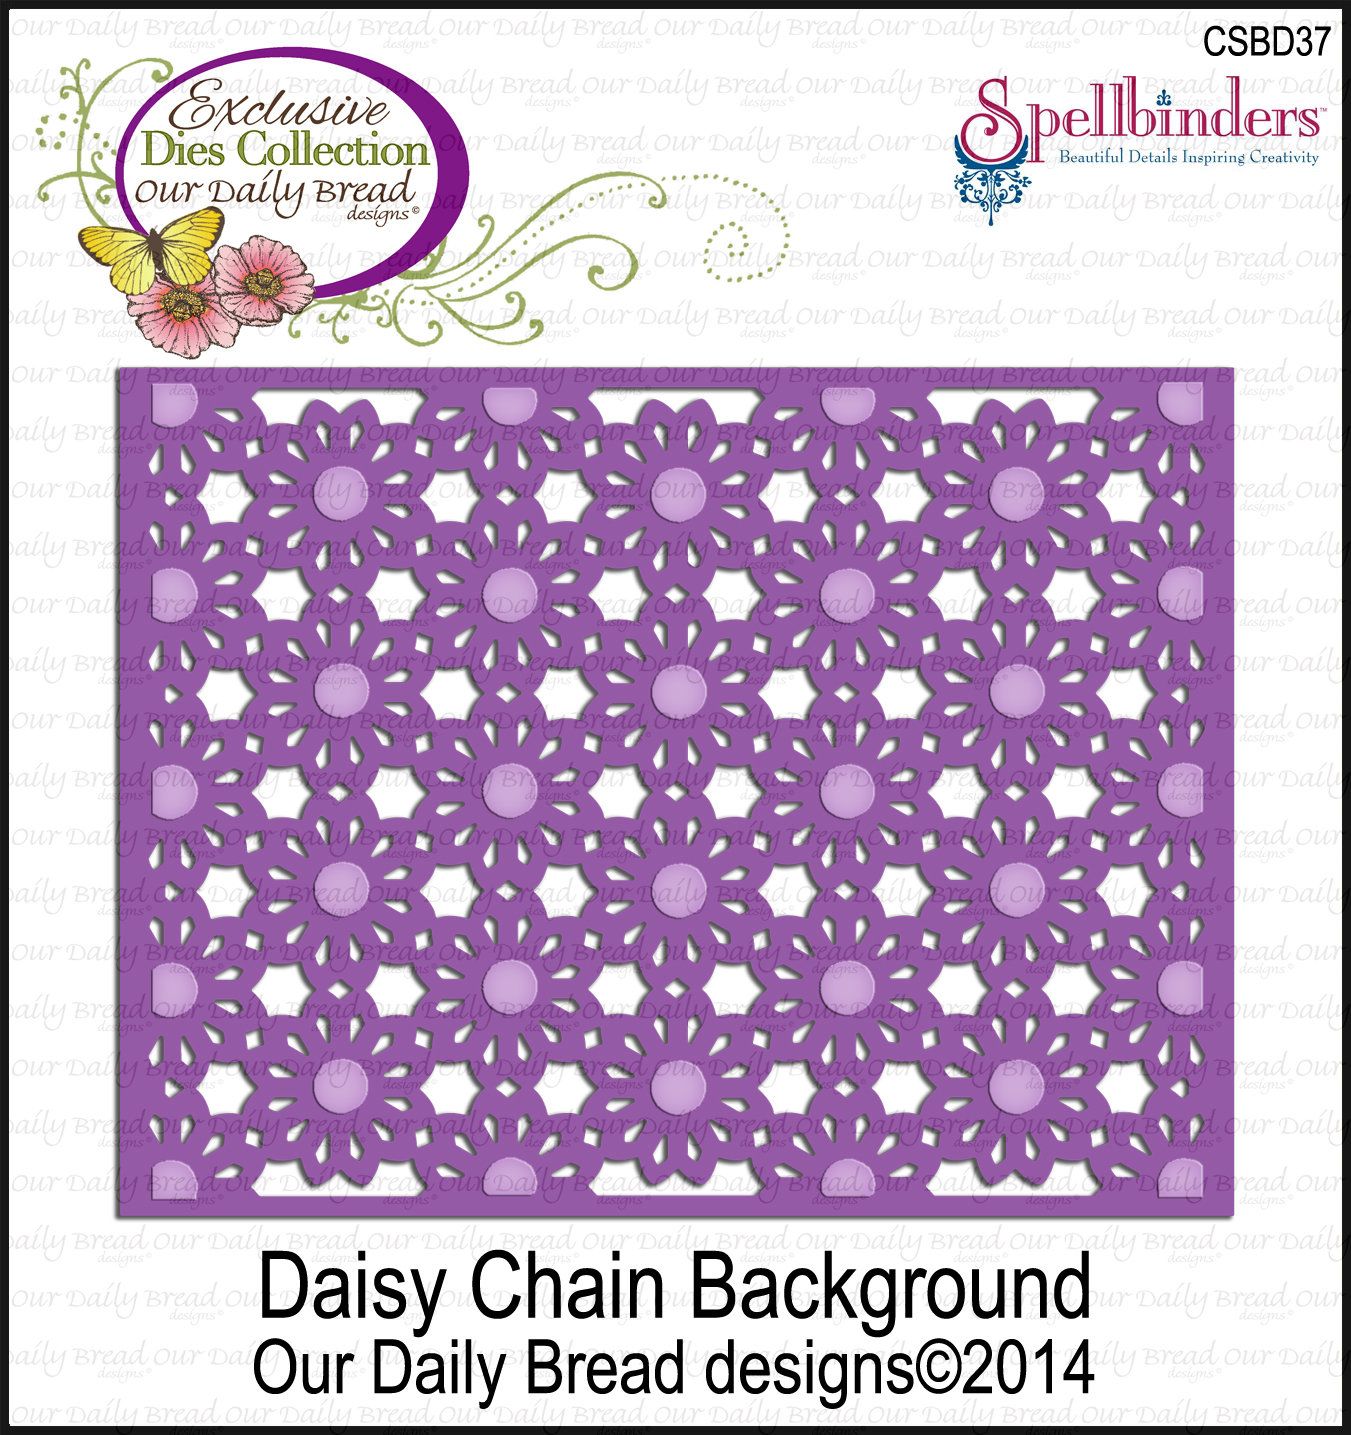 http://www.ourdailybreaddesigns.com/index.php/csbd37-daisy-chain-background-die.html